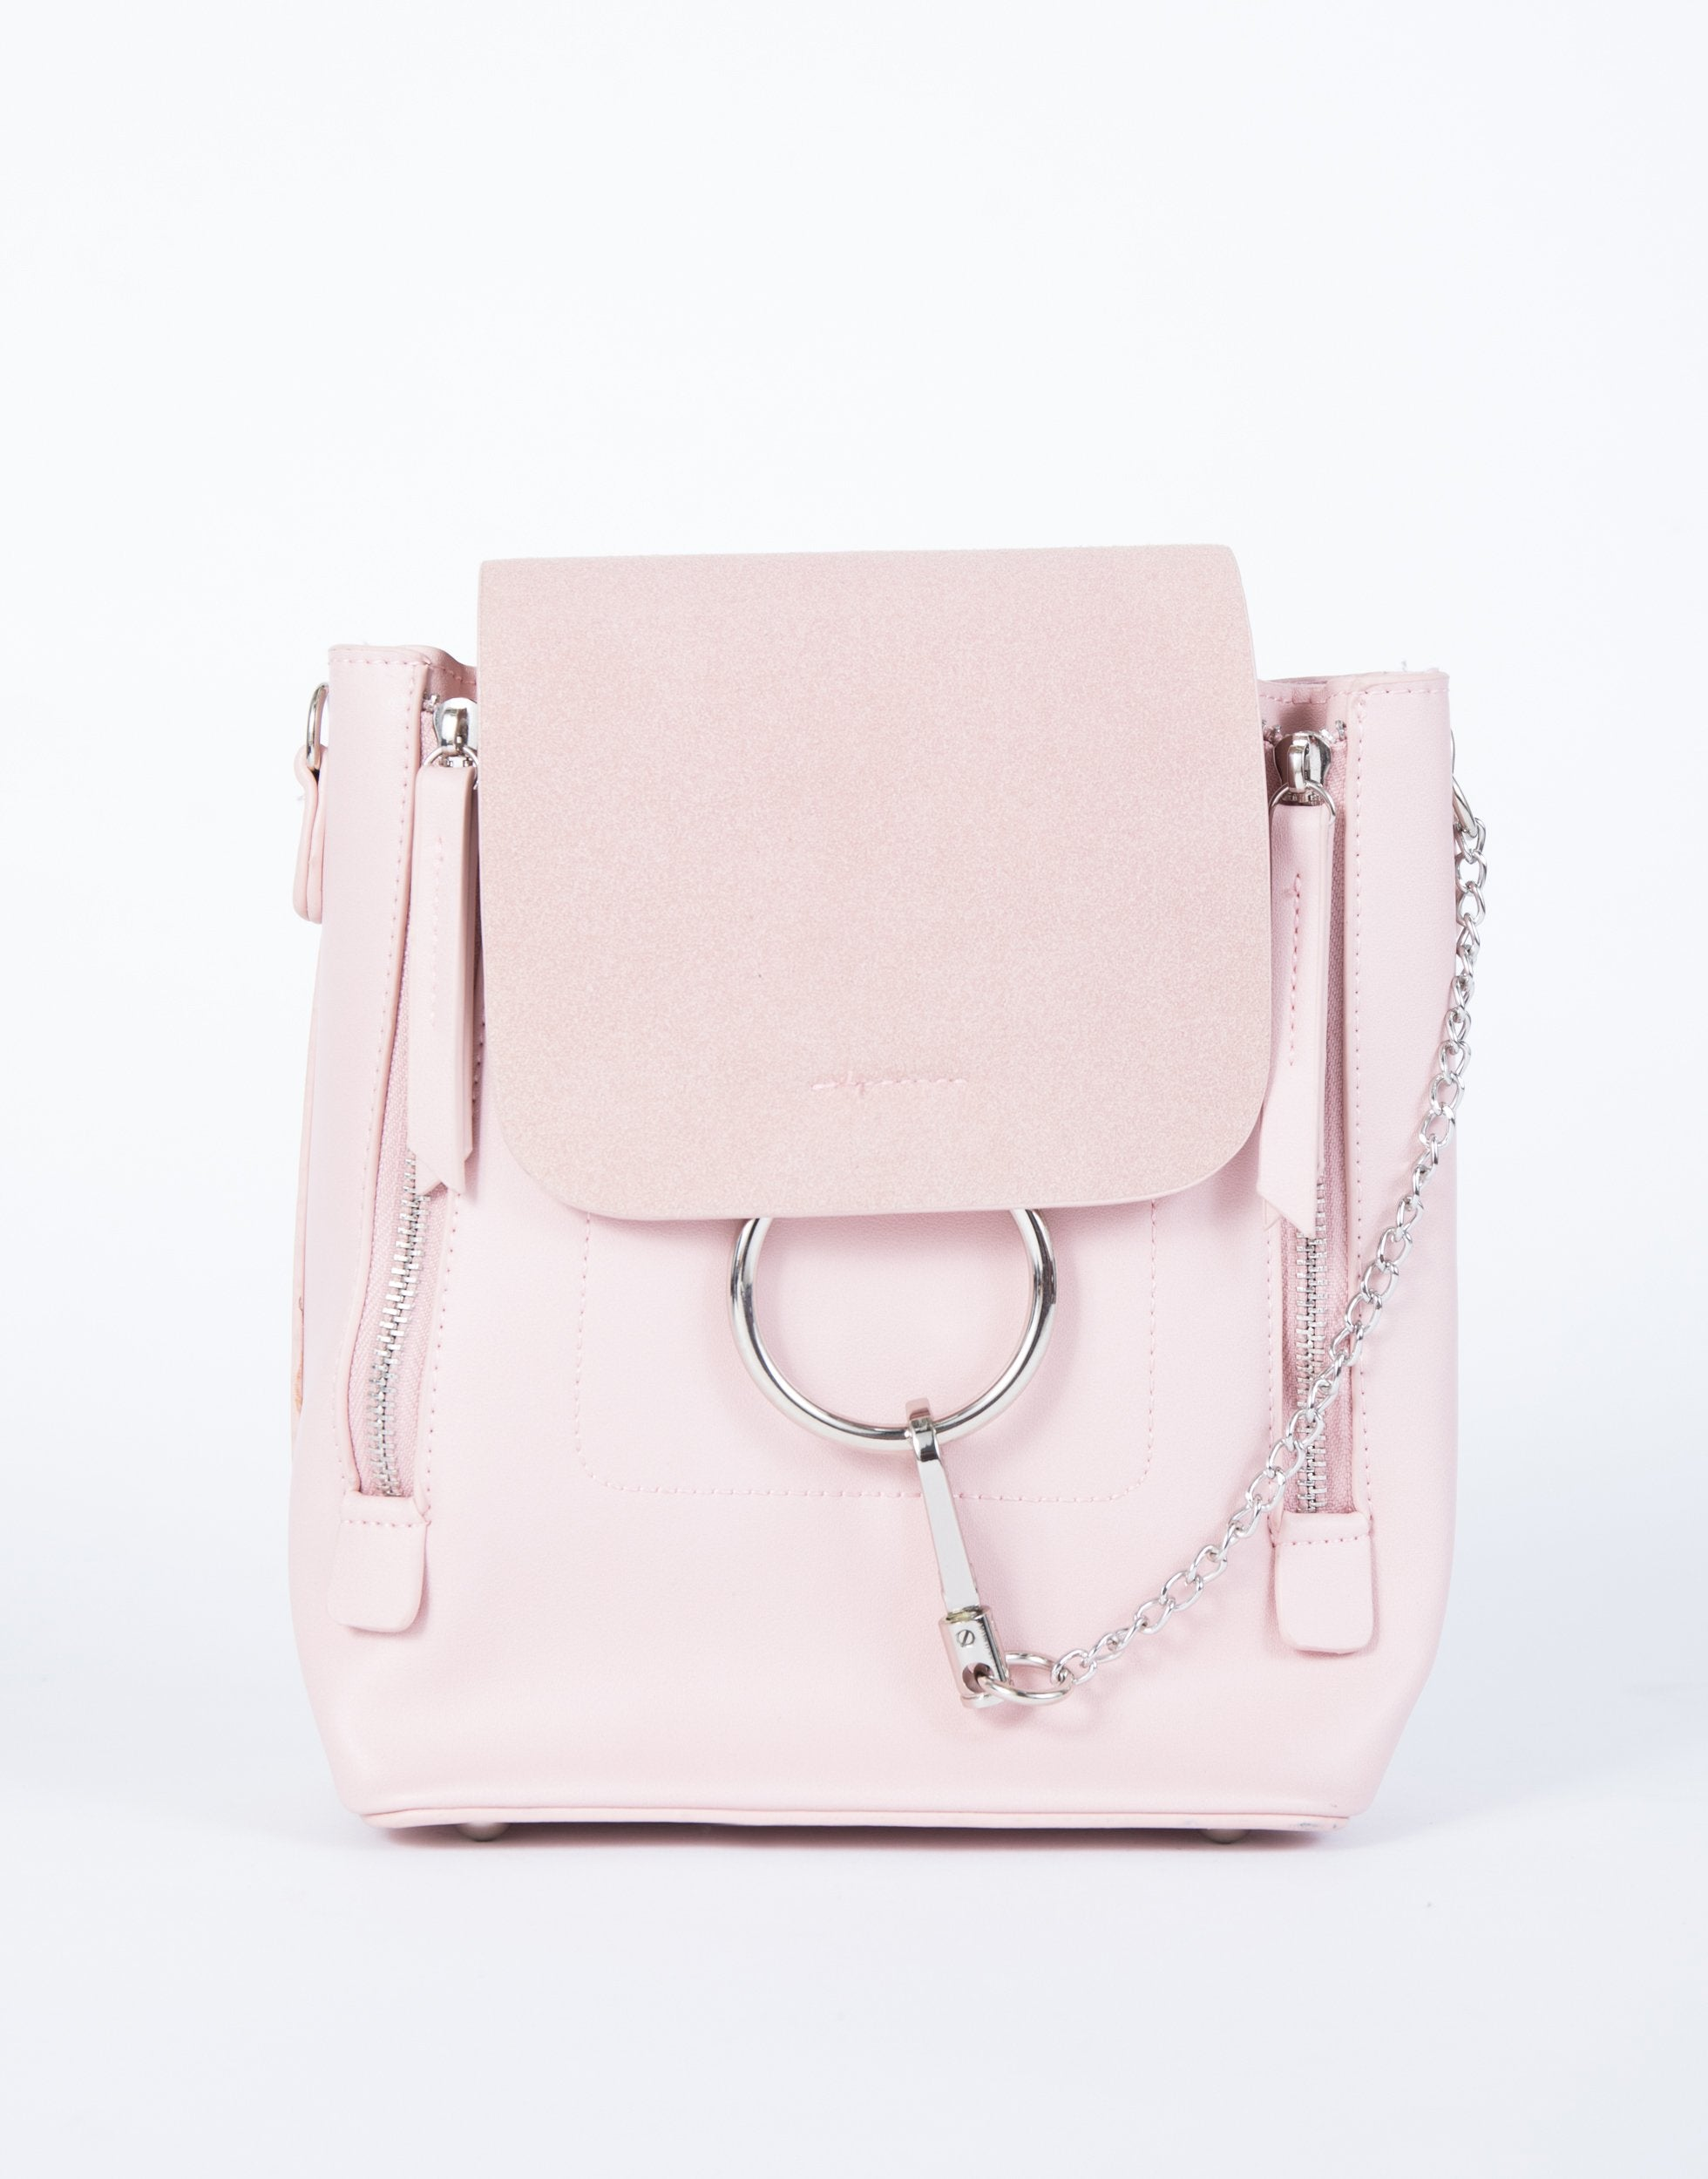 Hooked on You Bag - 2020AVE